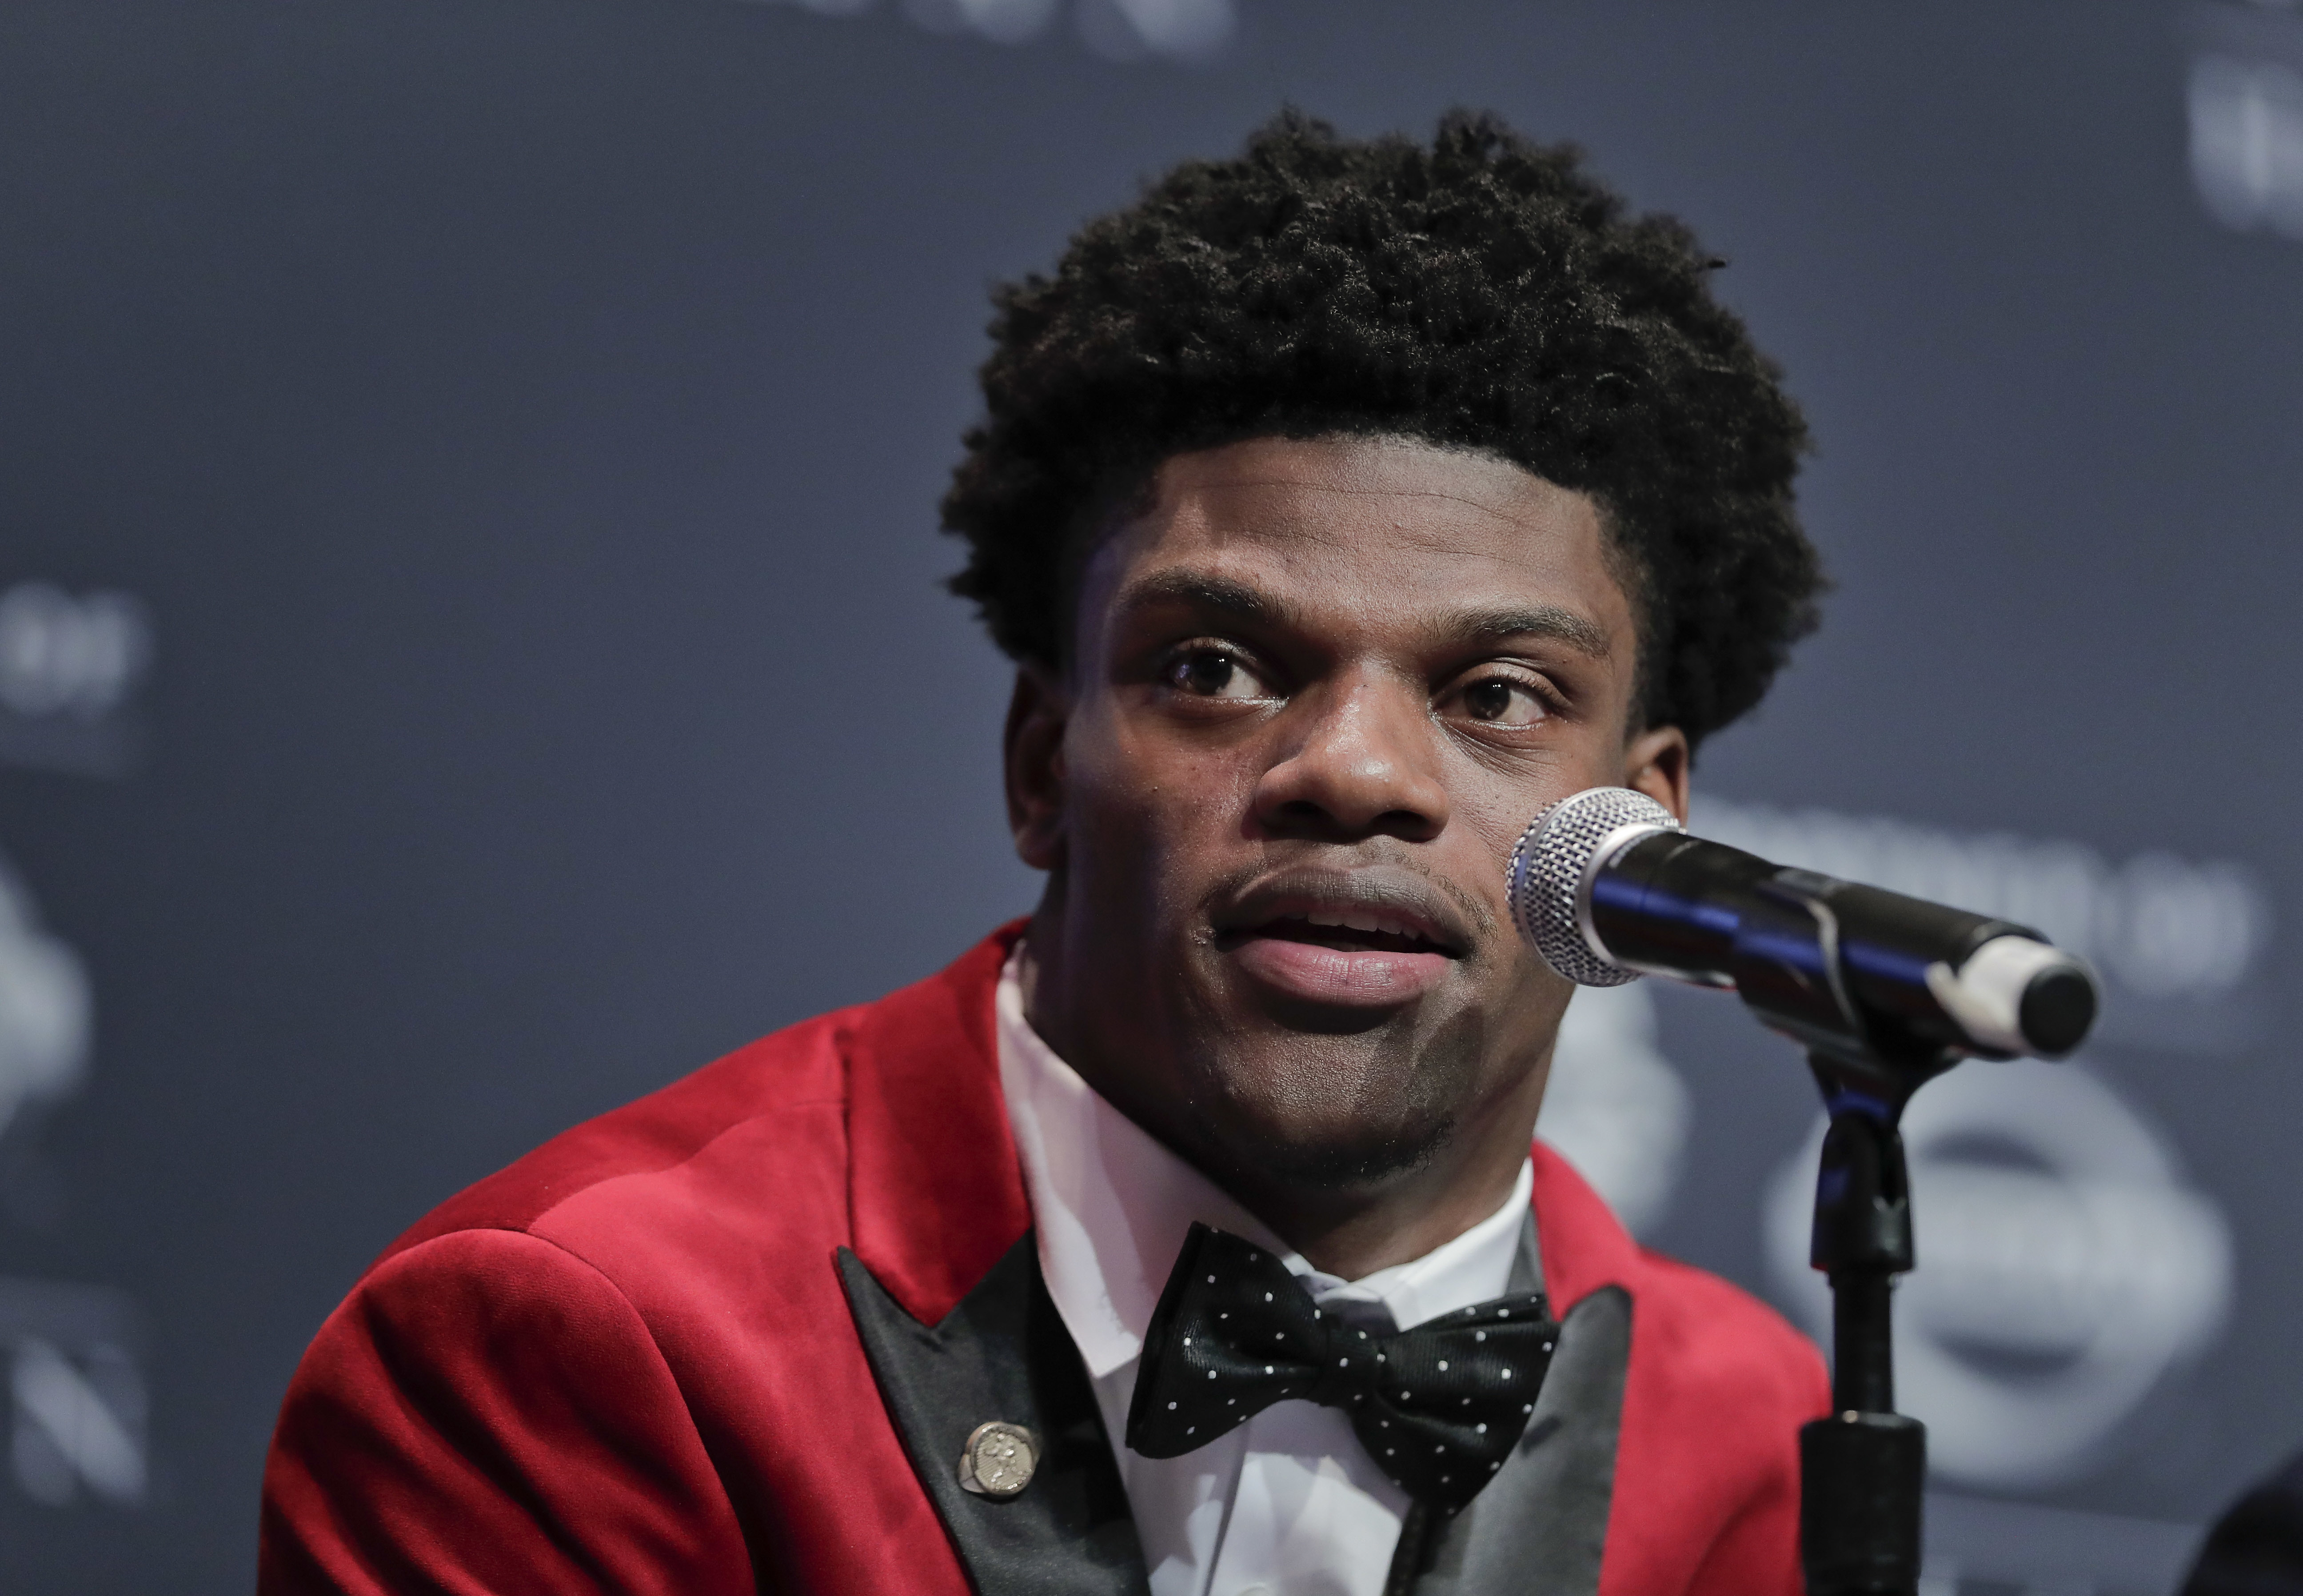 Louisville's Lamar Jackson answers questions during a news conference before the Heisman Trophy award ceremony Saturday, Dec. 10, 2016, in New York. (AP Photo/Julie Jacobson)